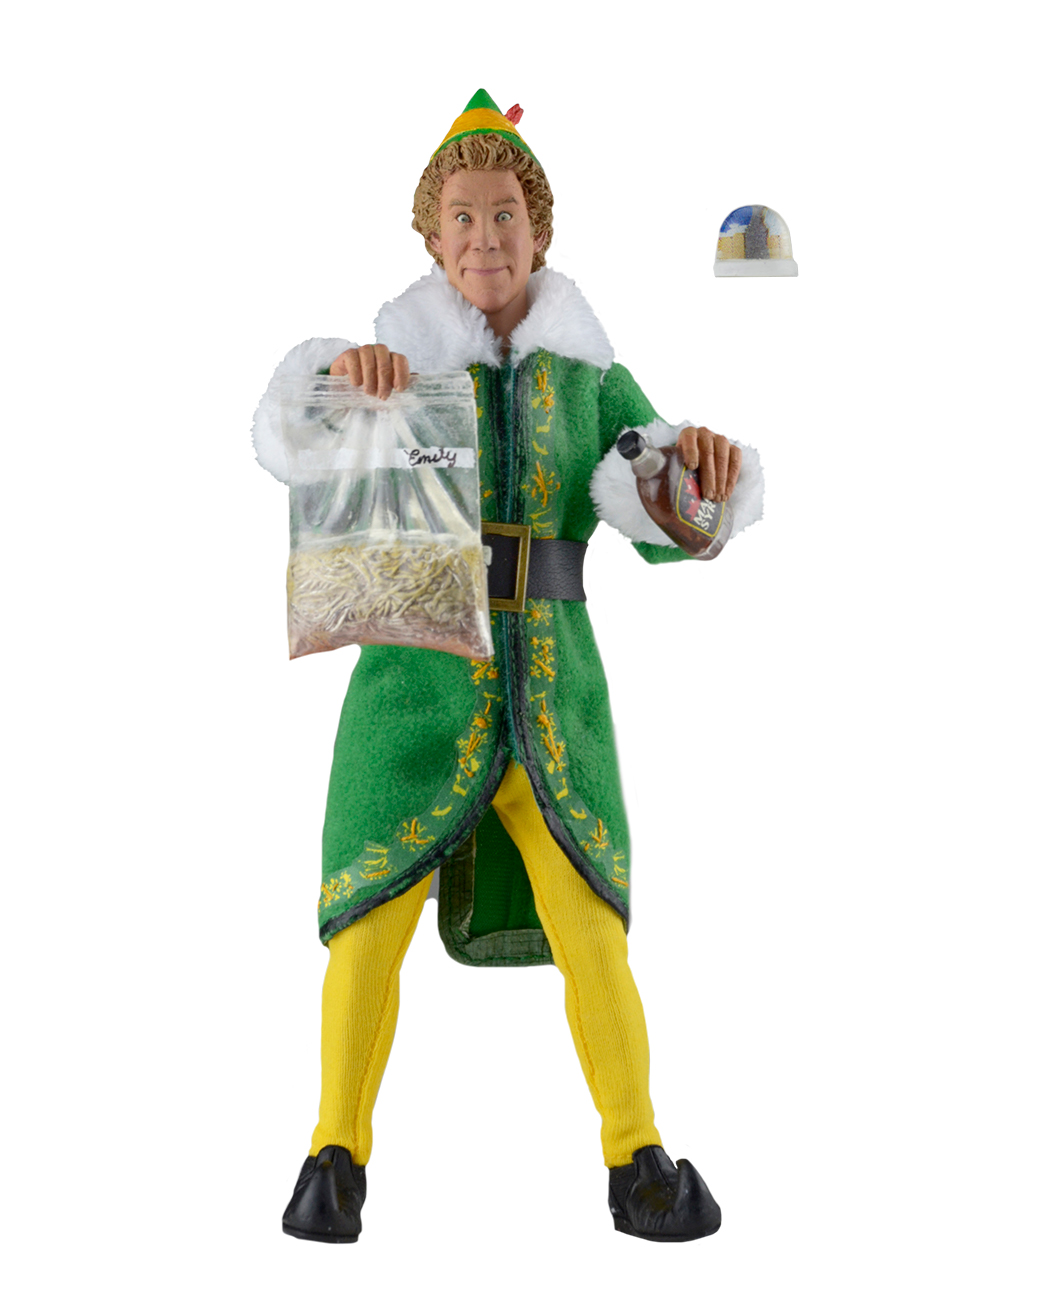 Buddy the Elf is Coming this Christmas from NECA – Mego Museum